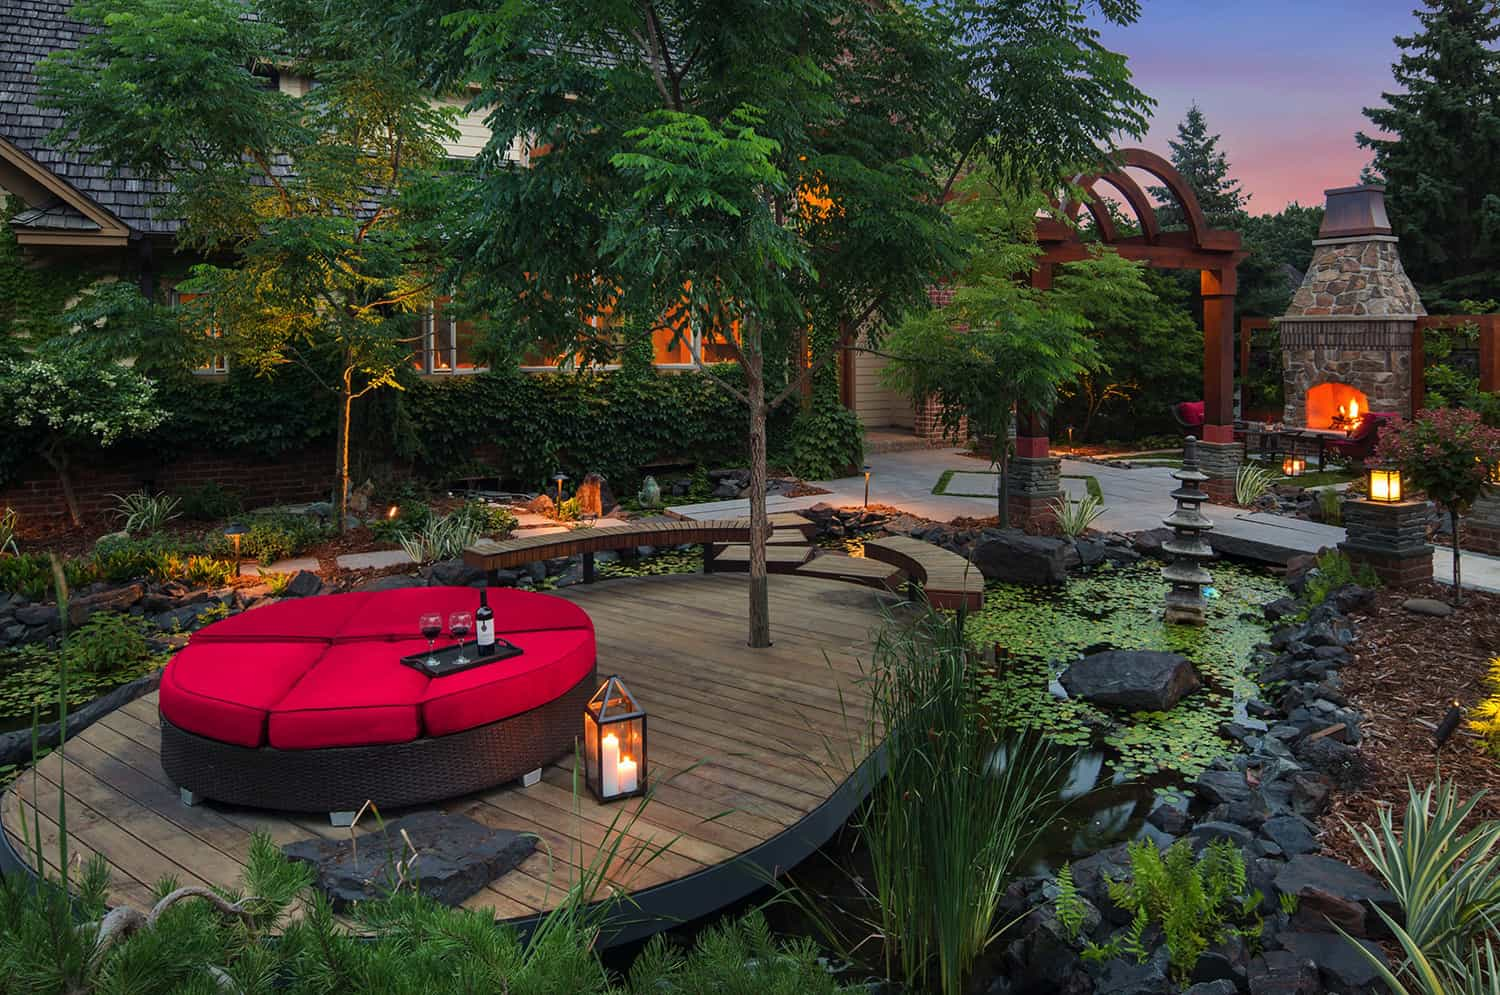 balinese-inspired-garden-with-a-pond-and-floating-deck